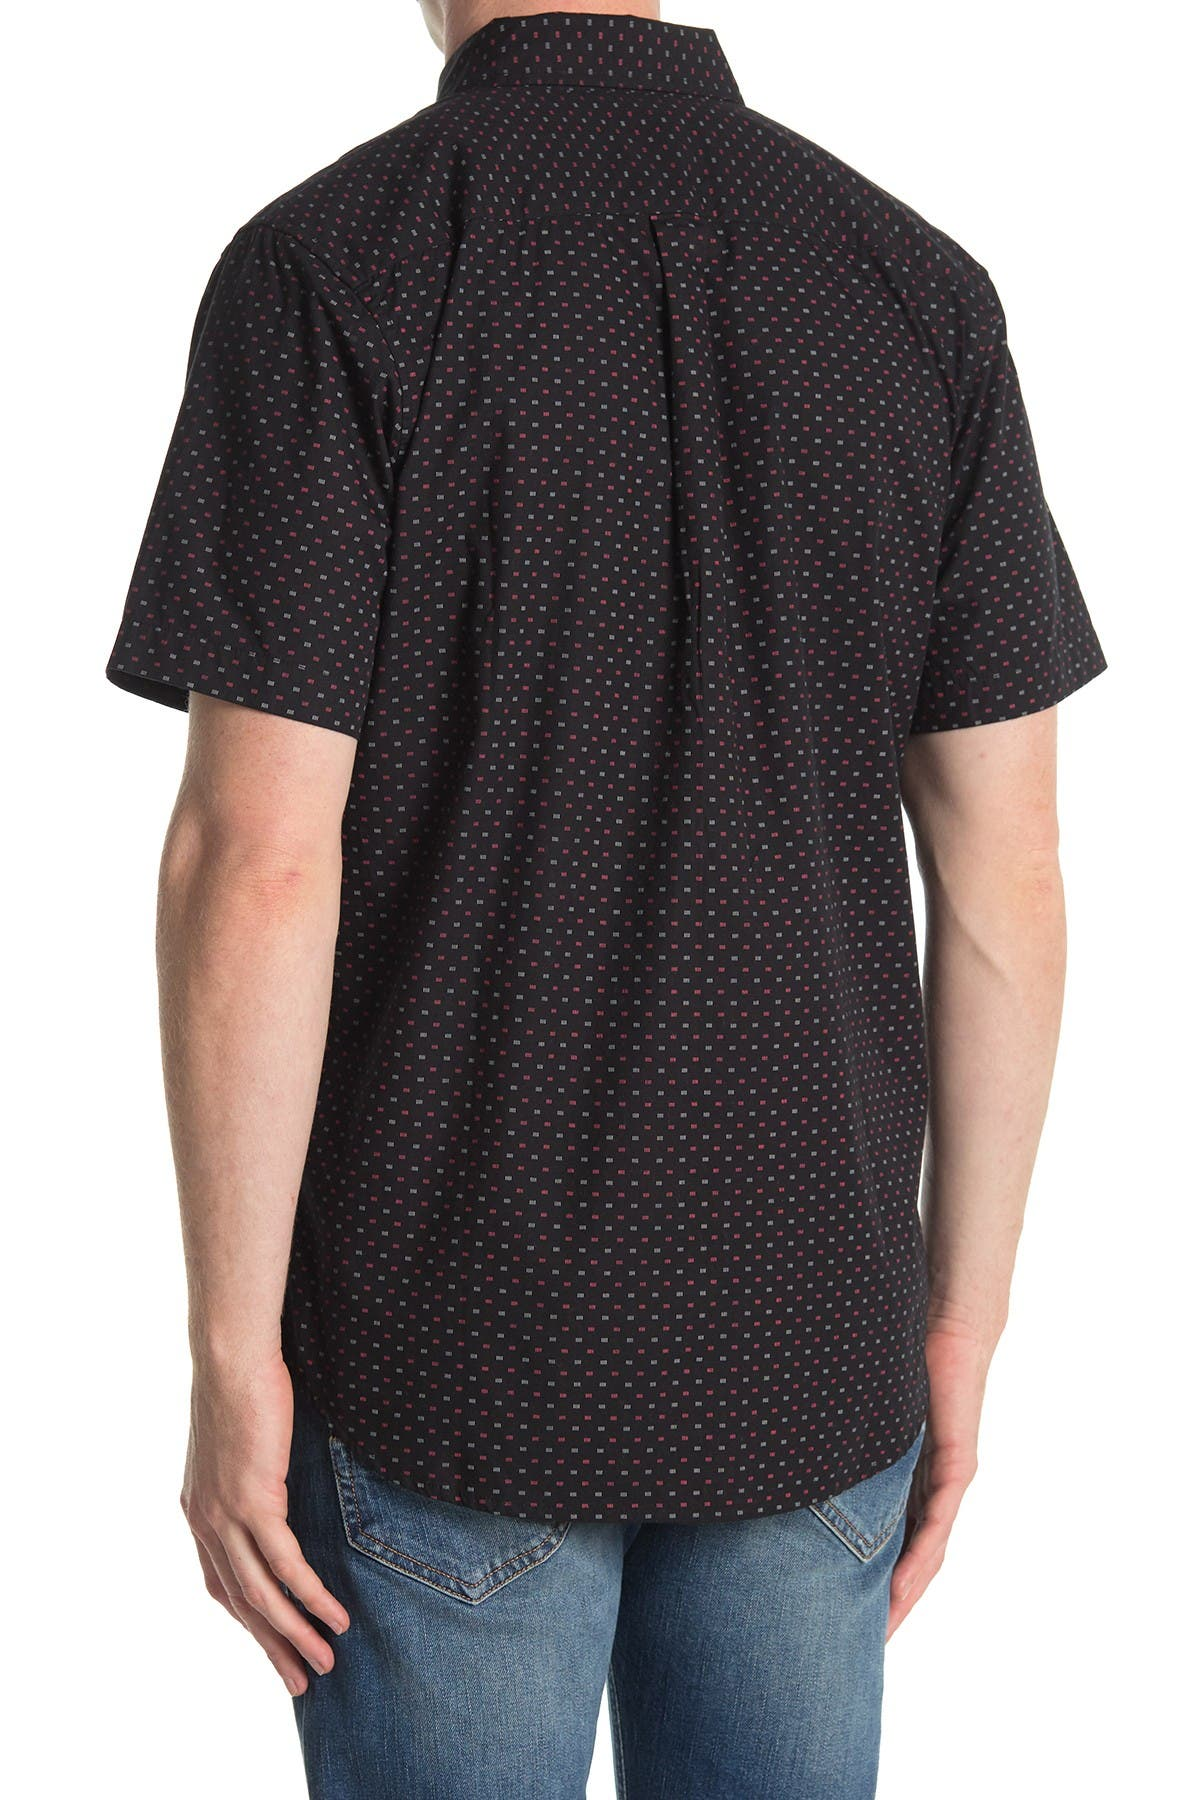 Obey Riggs Woven Short Sleeve Slim Fit Shirt